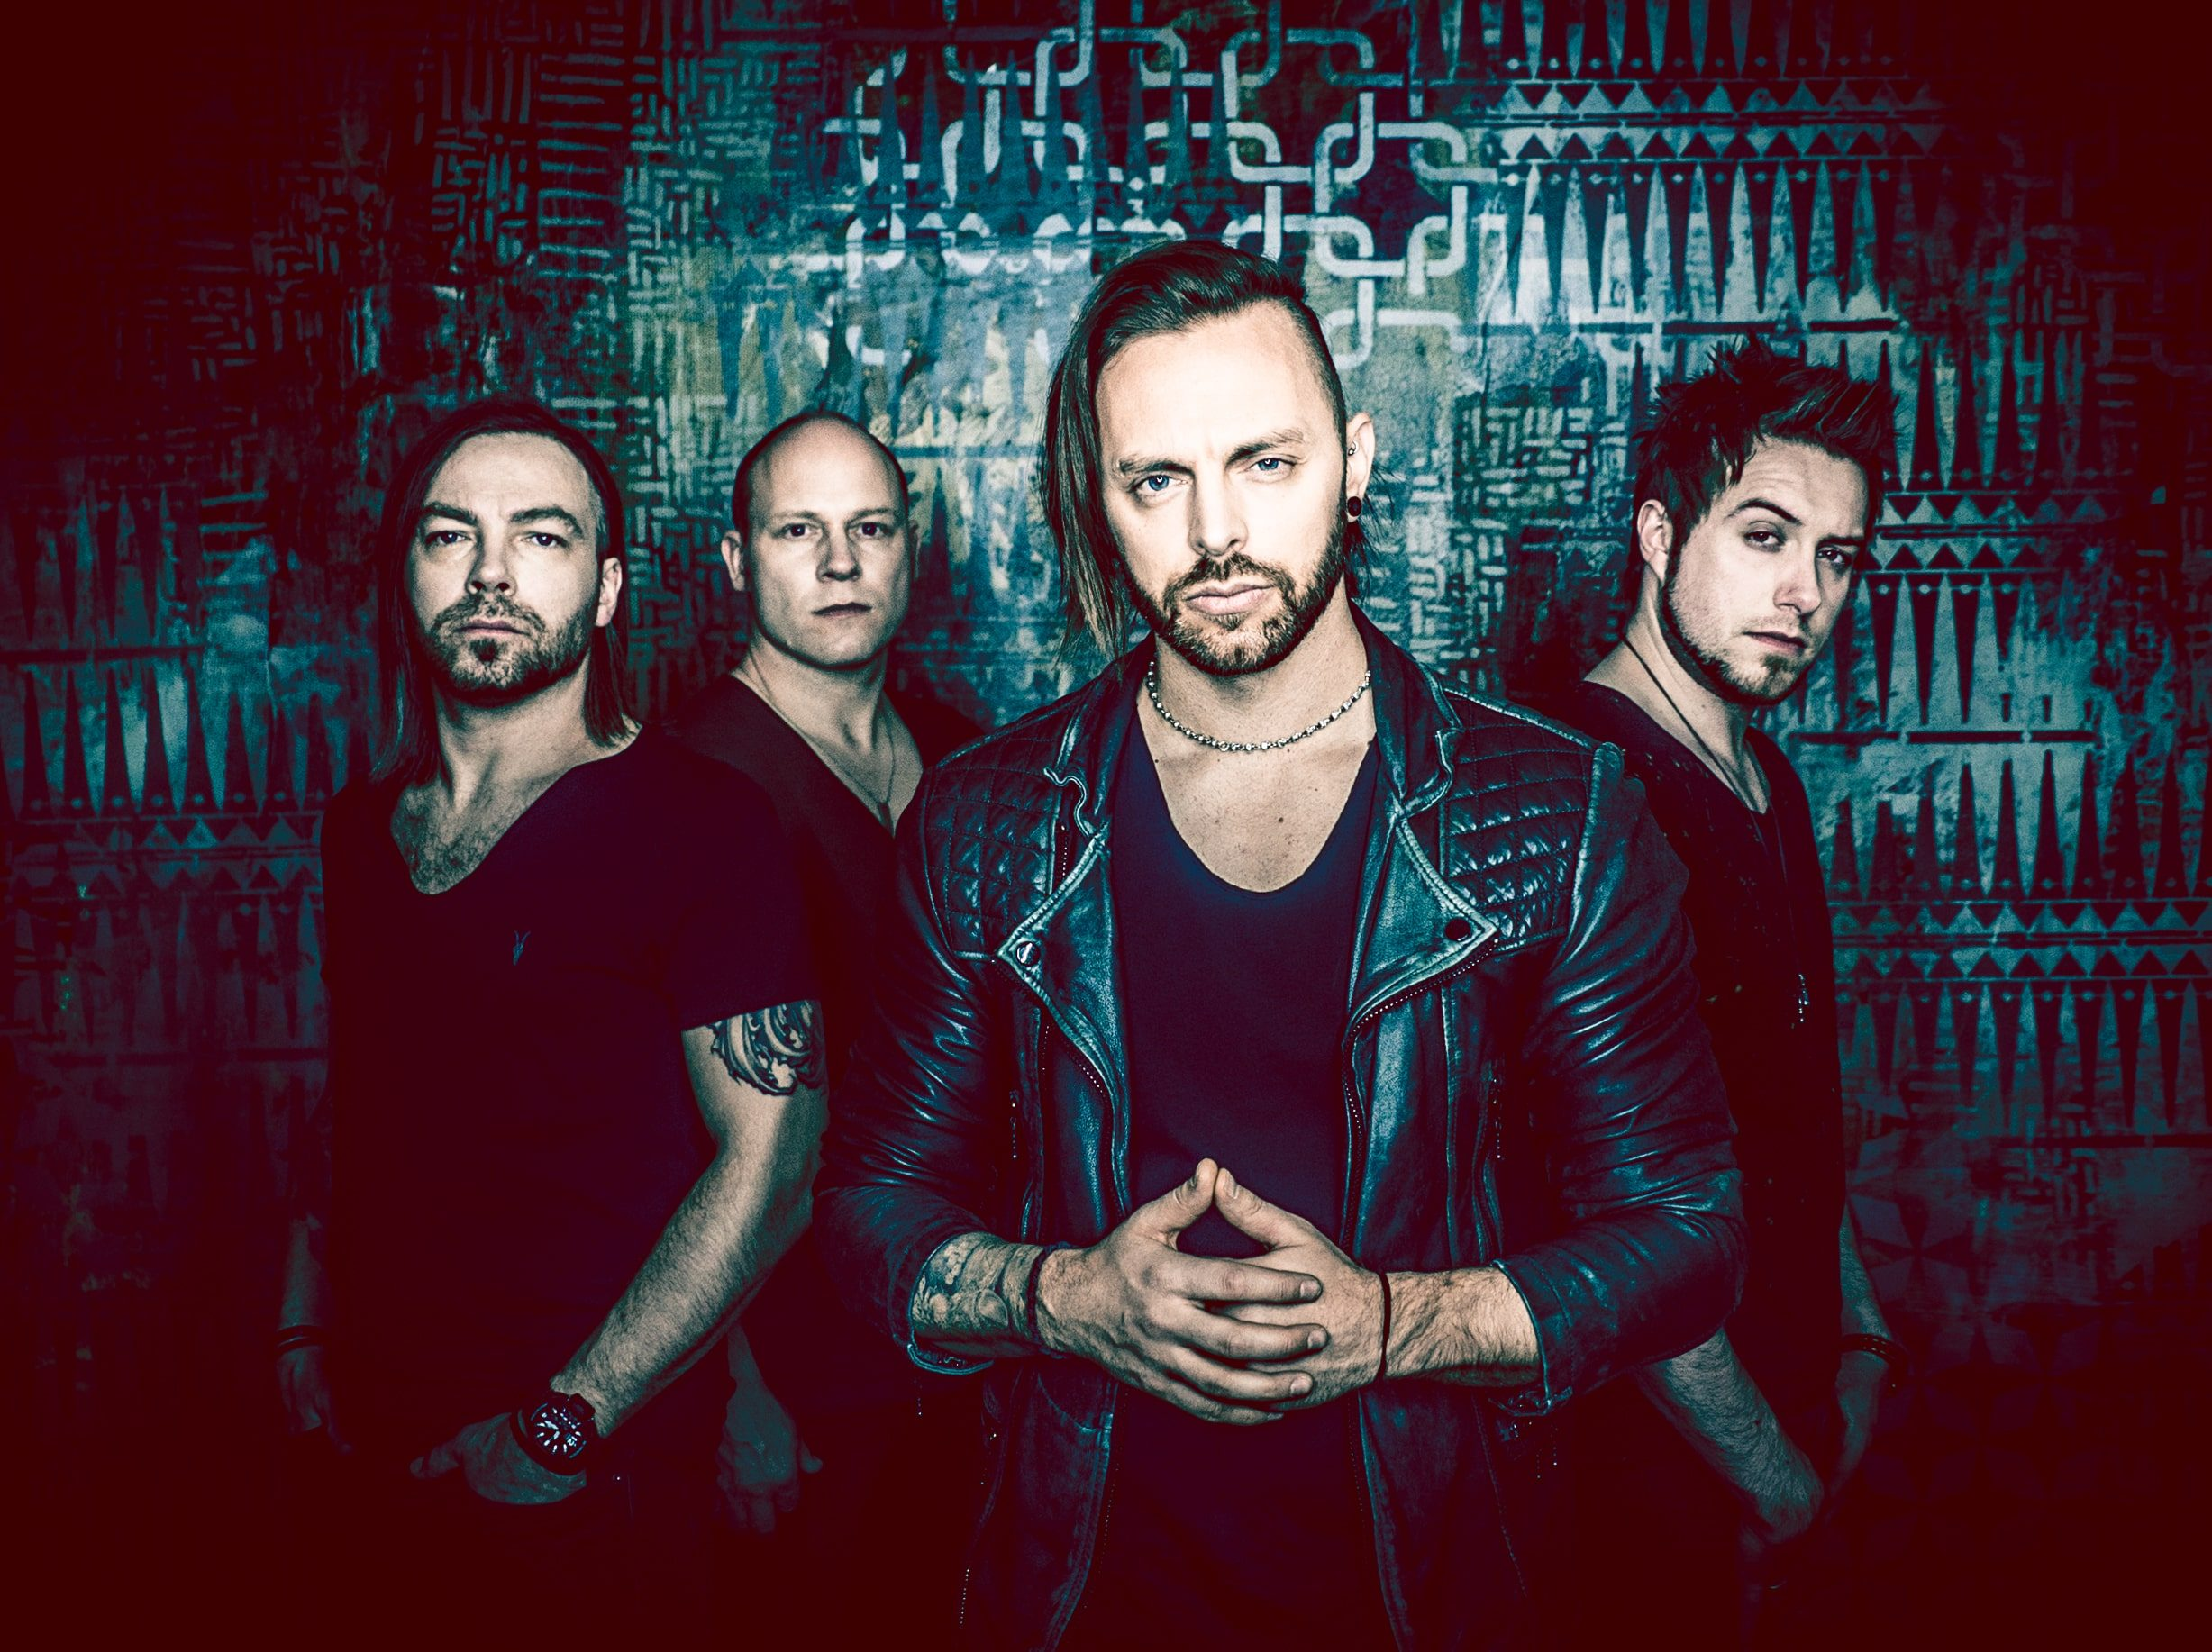 Bullet For My Valentine Use Tour Footage In New Video For Piece Of Me